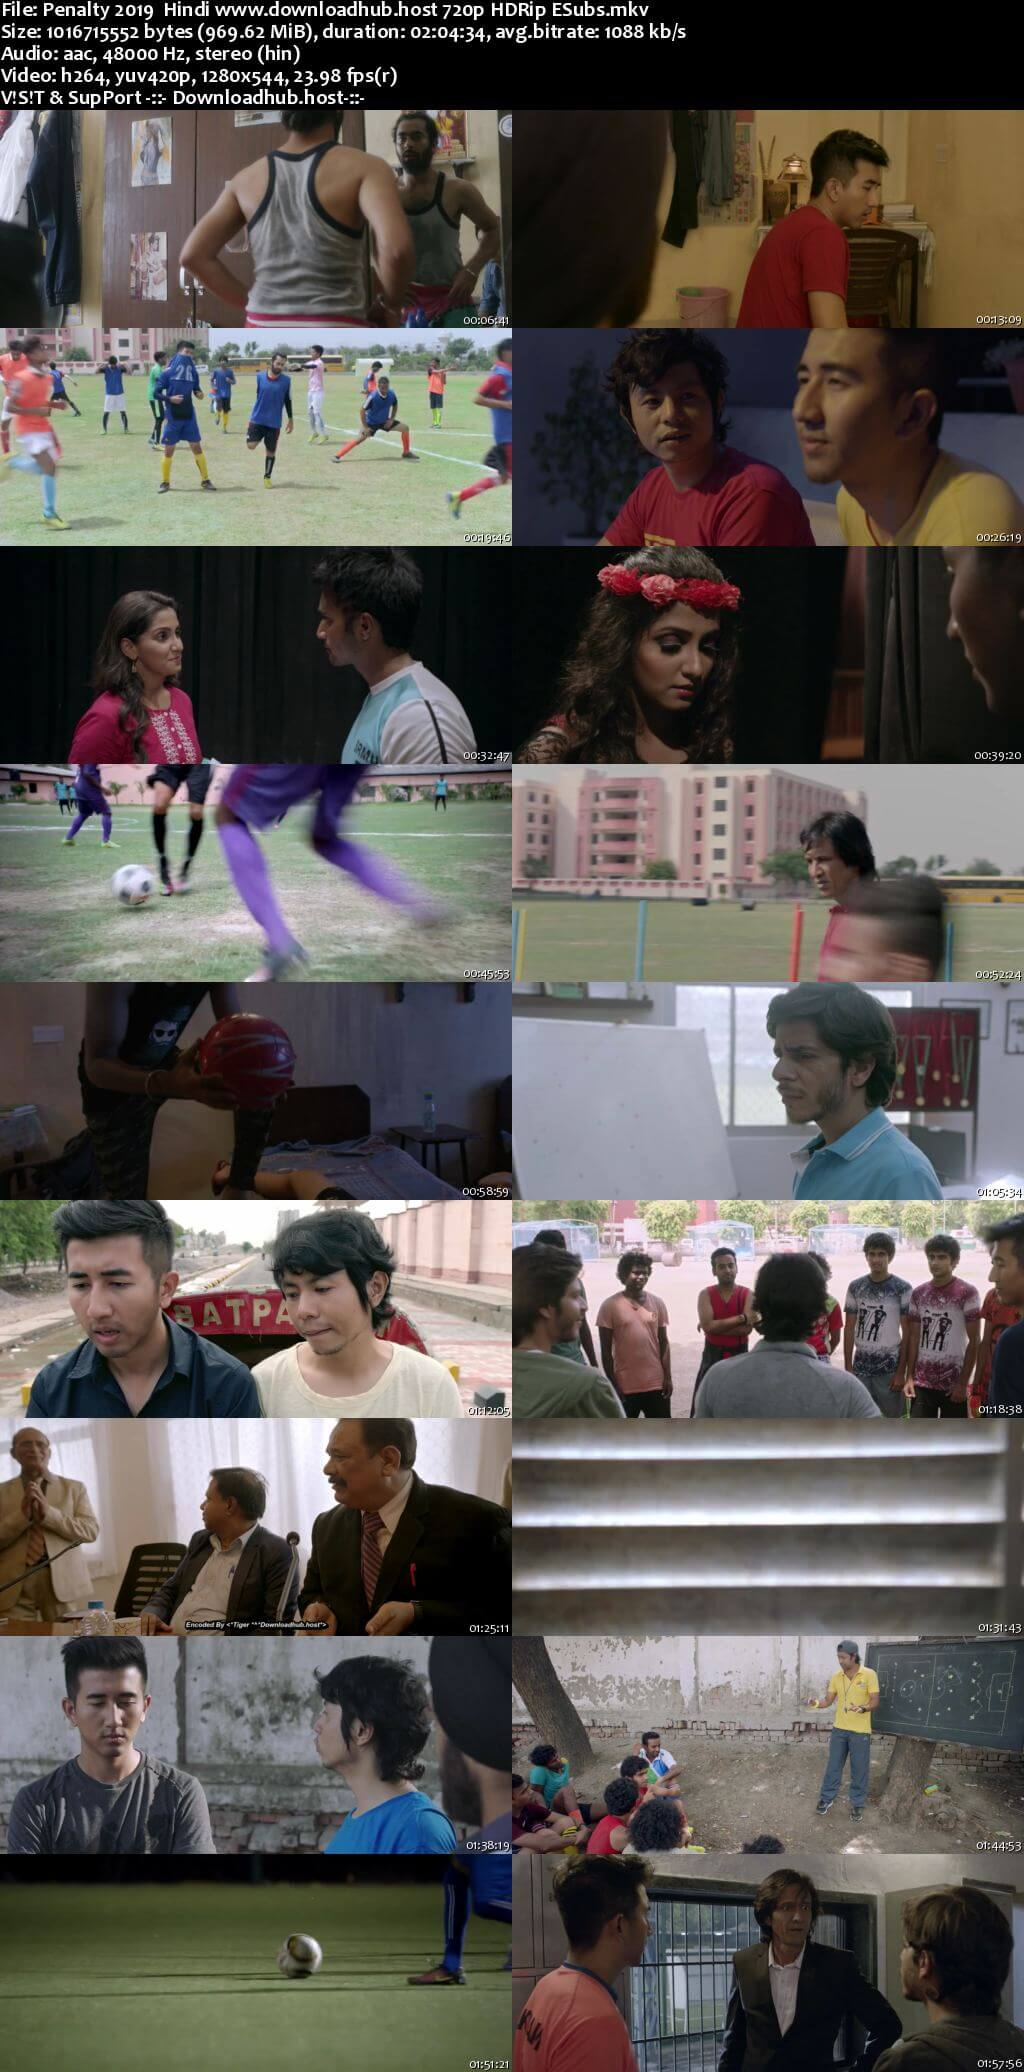 Penalty 2019 Hindi 720p HDRip ESubs